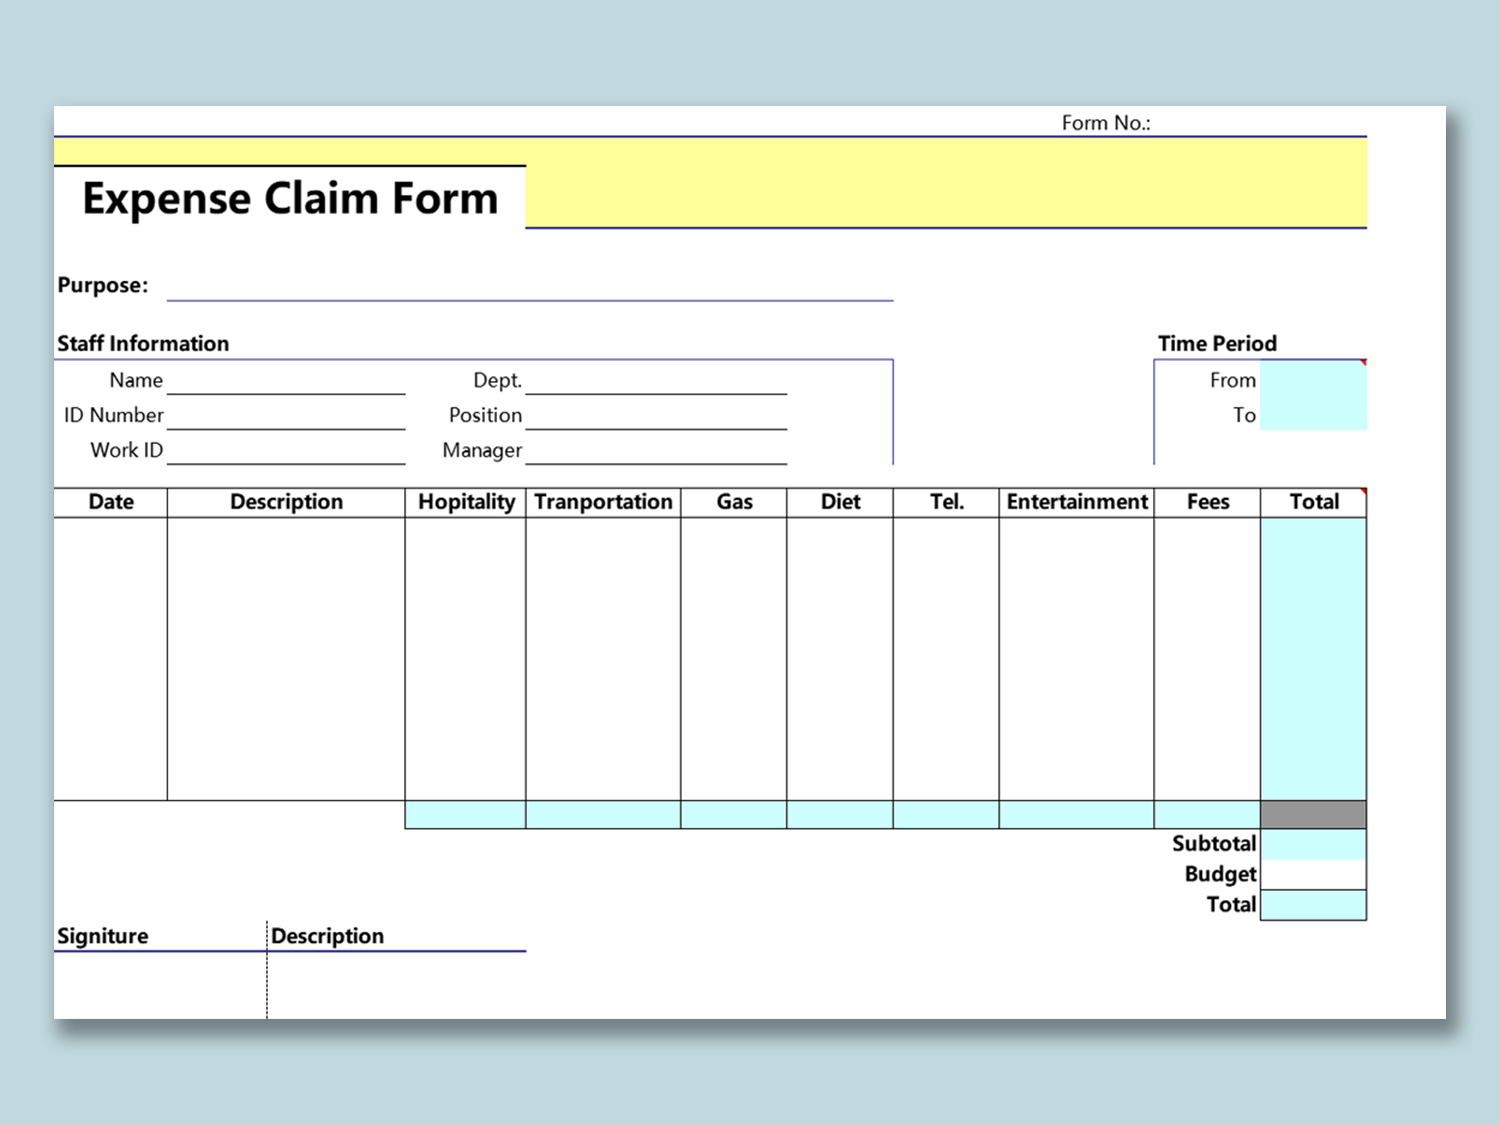 Expense Claim Form Template from d4z1onkegyrs5.cloudfront.net